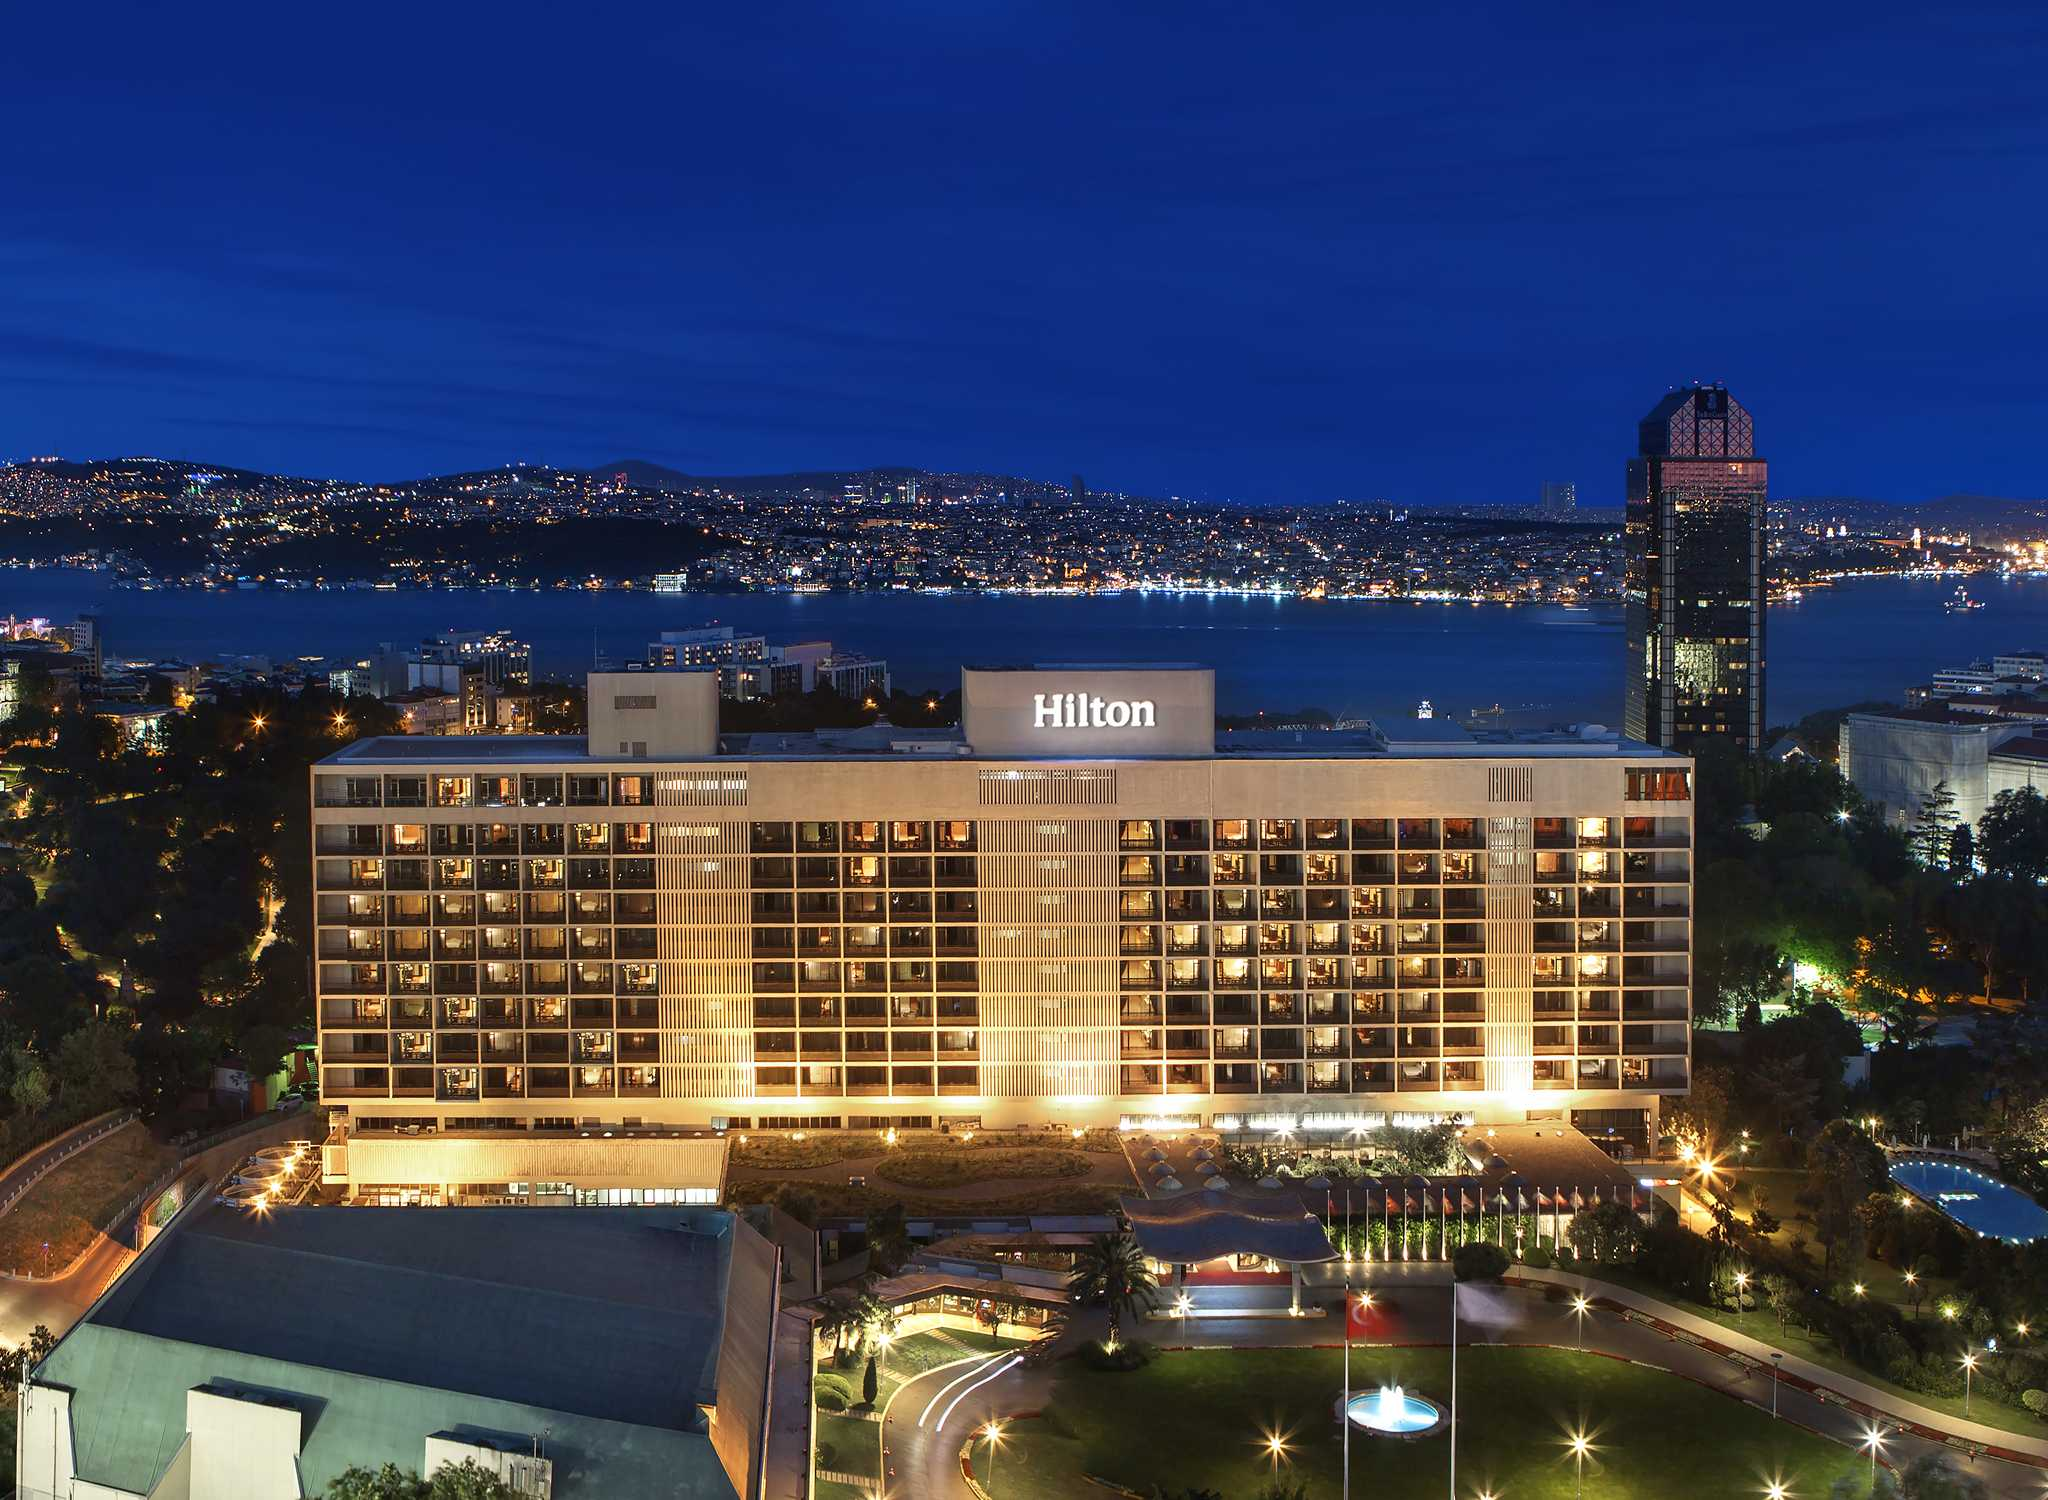 Spa Exterieur Hotel Hilton Hotels & Resorts - Turquie